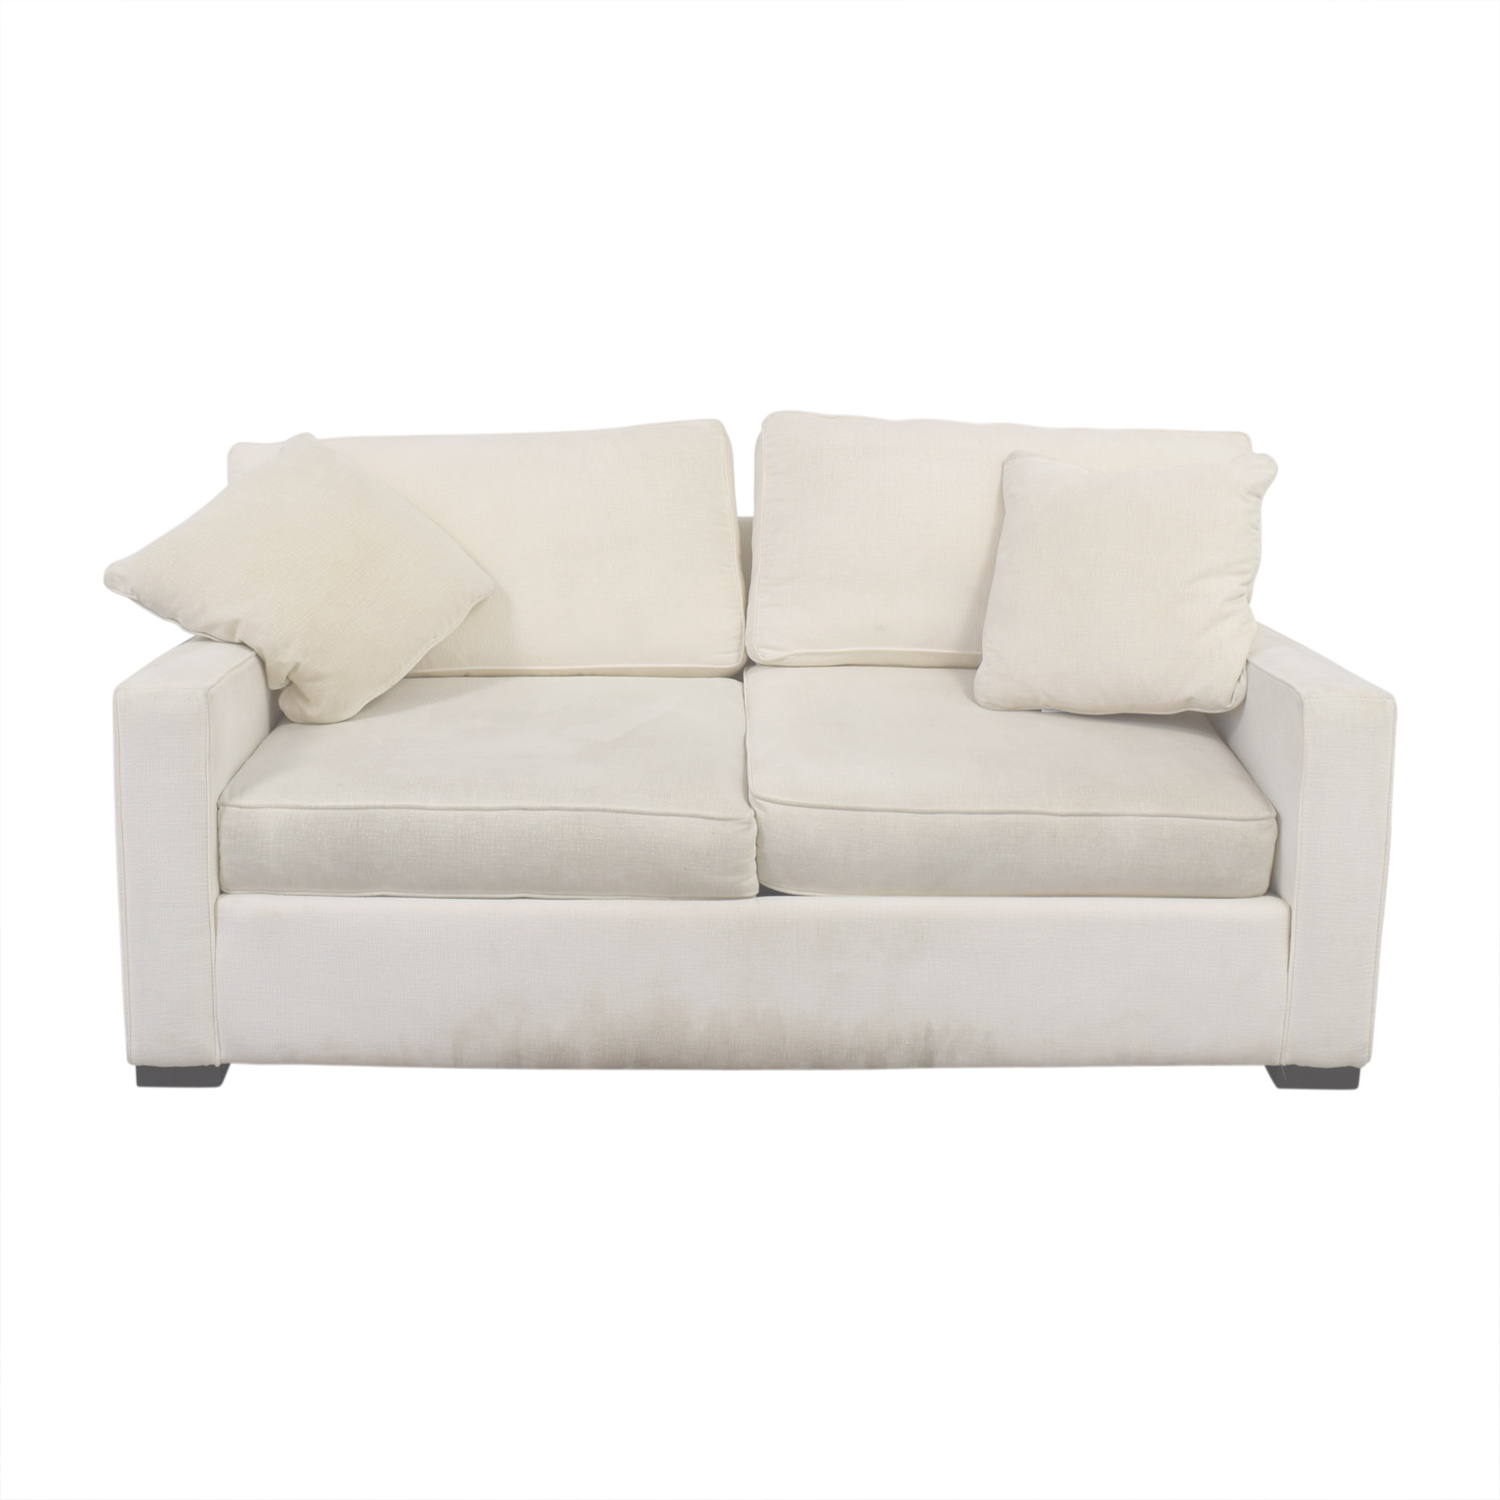 loveseat leather loveseats steal coaster a lois furniture set sofa and white